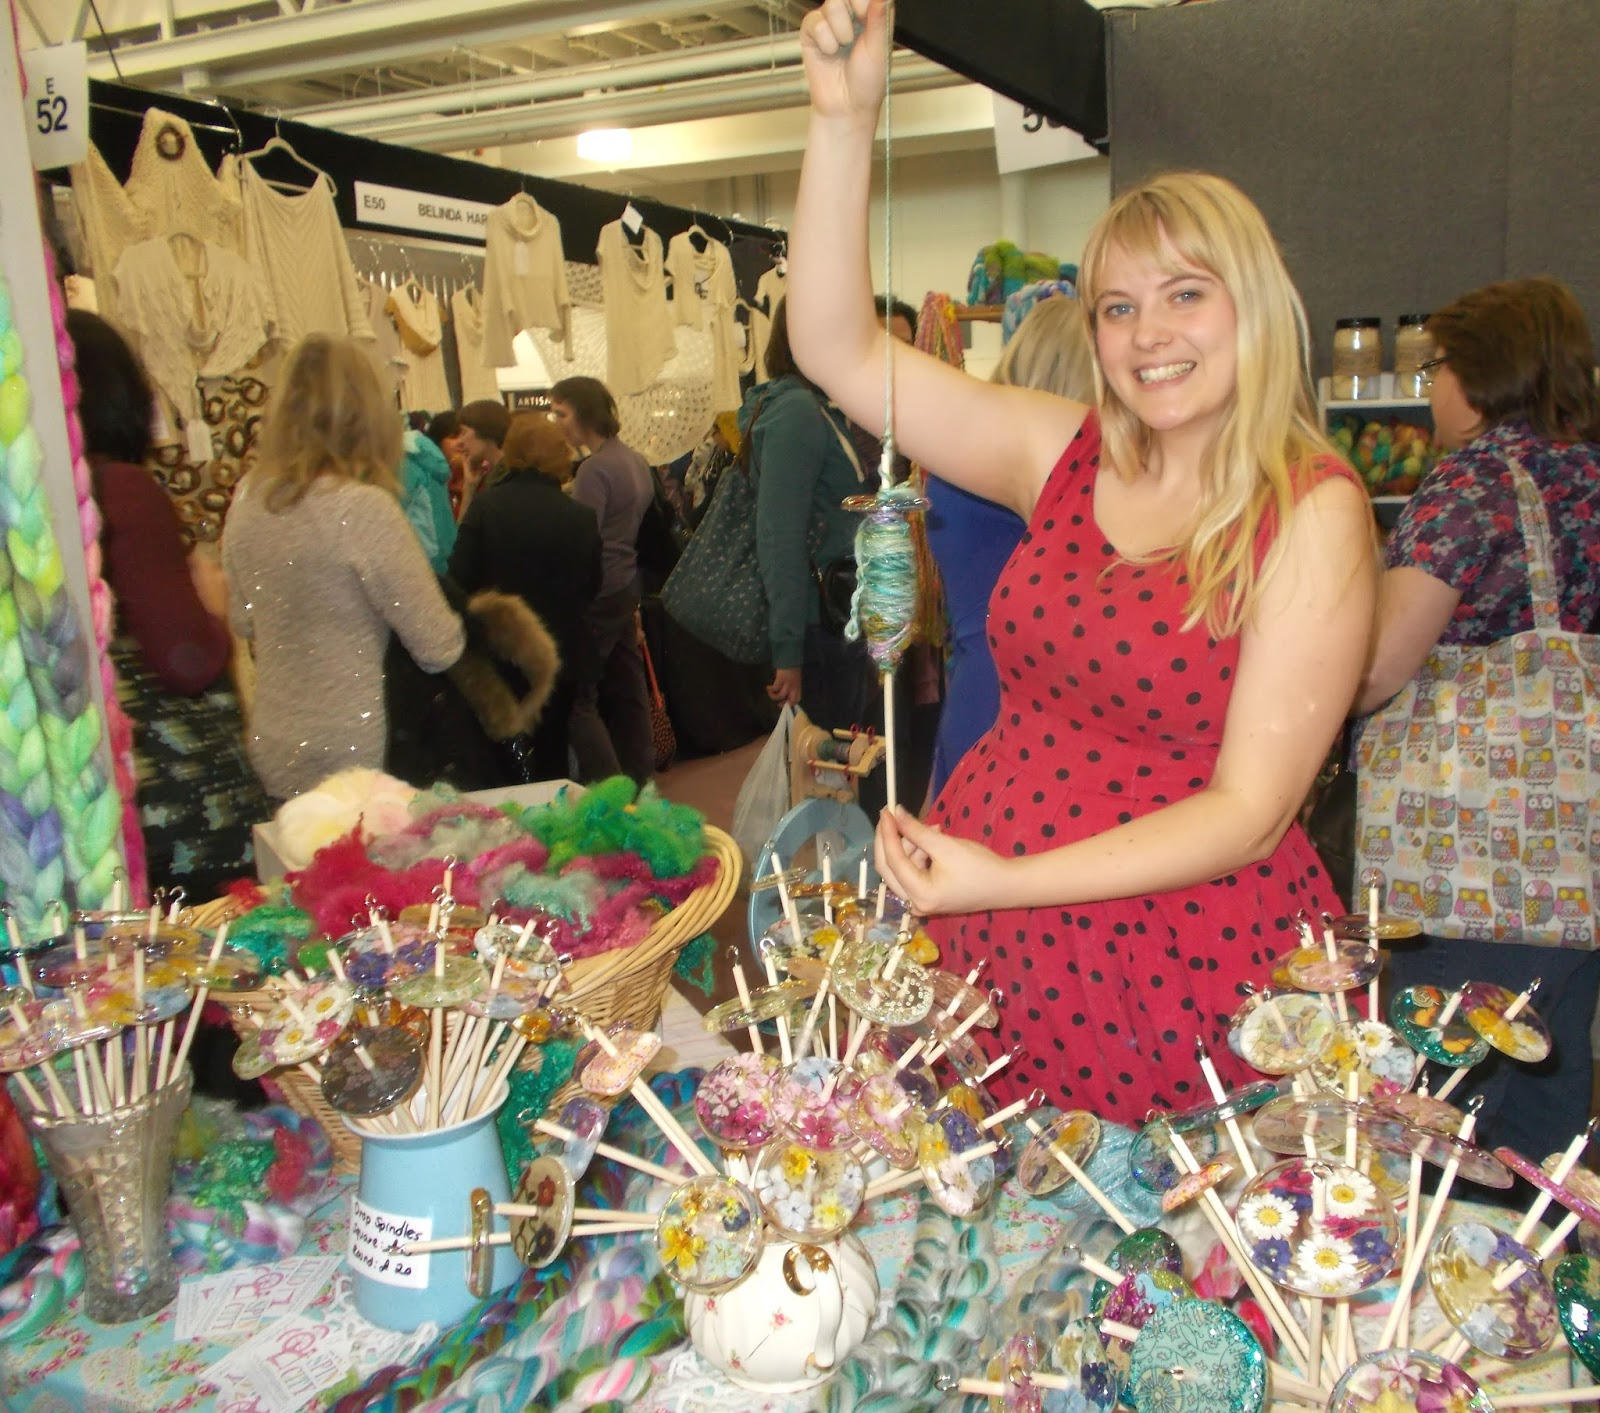 mariannas lazy daisy days: The Spring Knitting and Stitching Show 2016